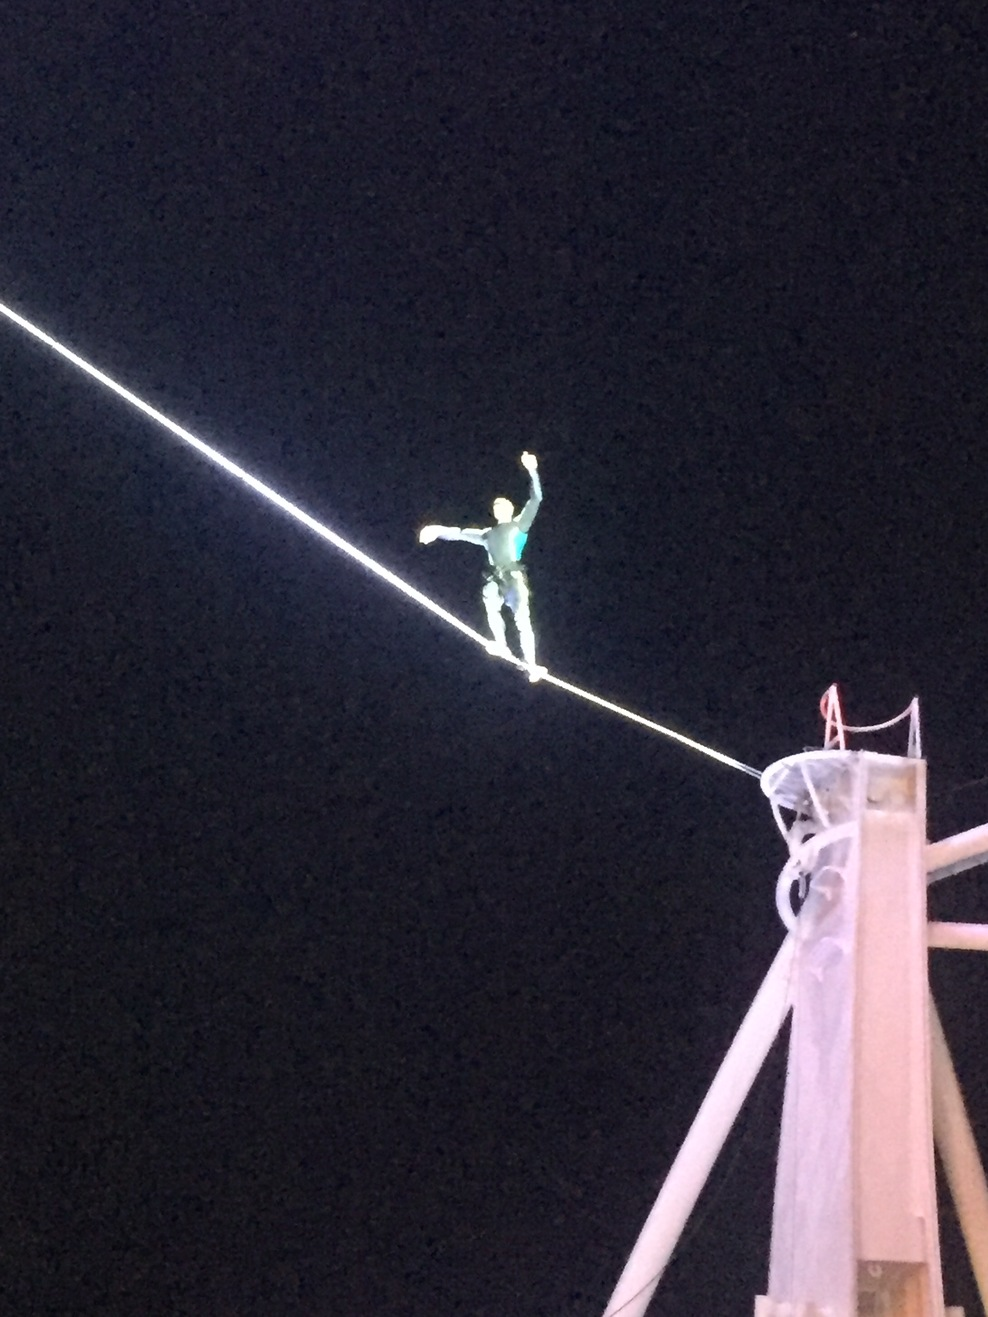 Aqua Show - tightrope walker high above the audience